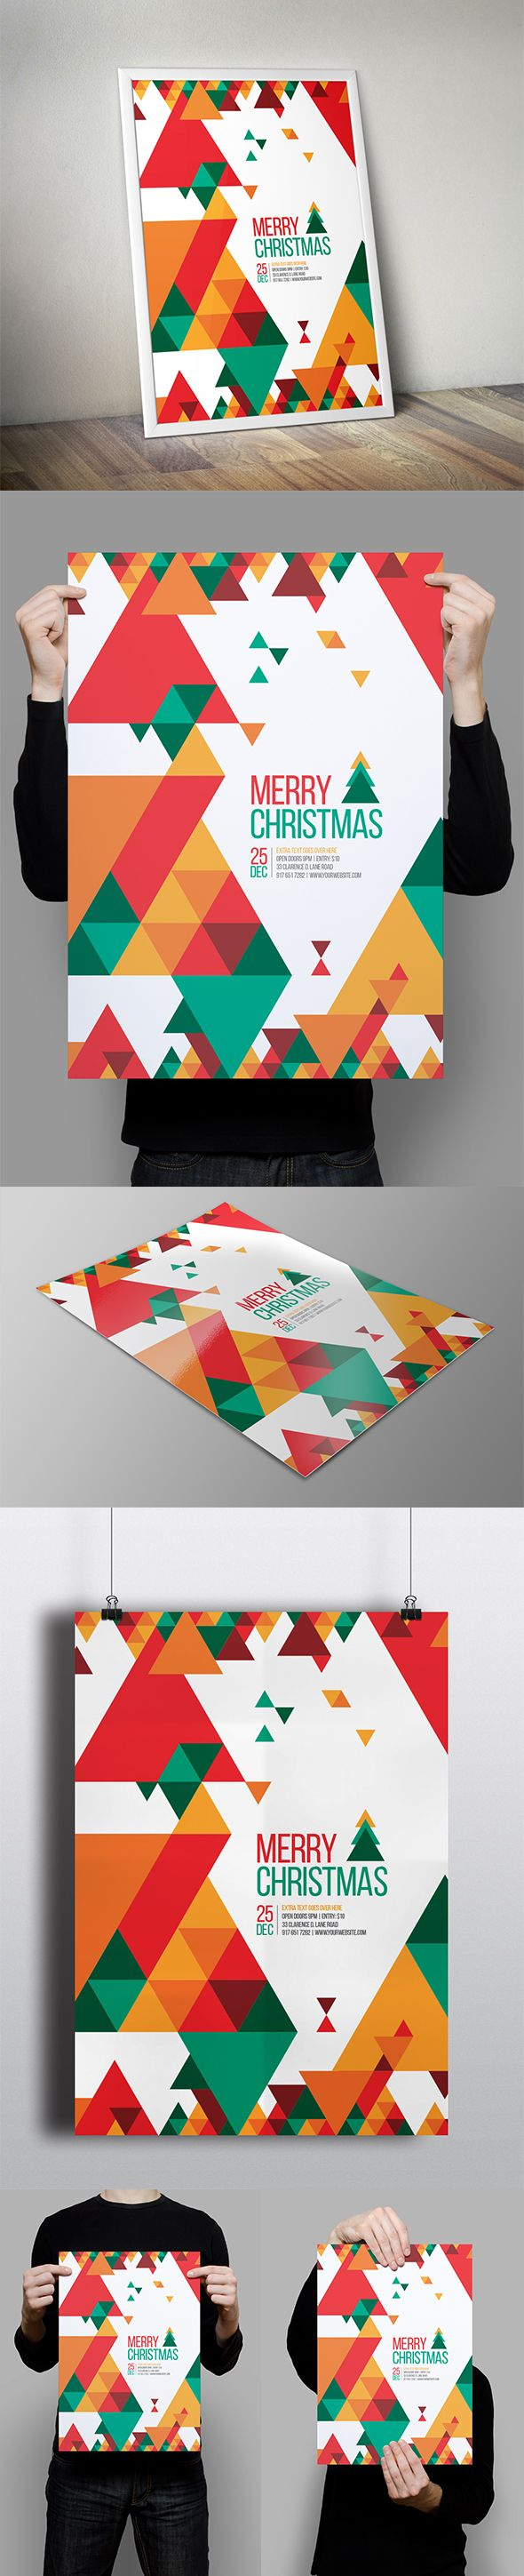 Minimal Christmas Flyer on Behance